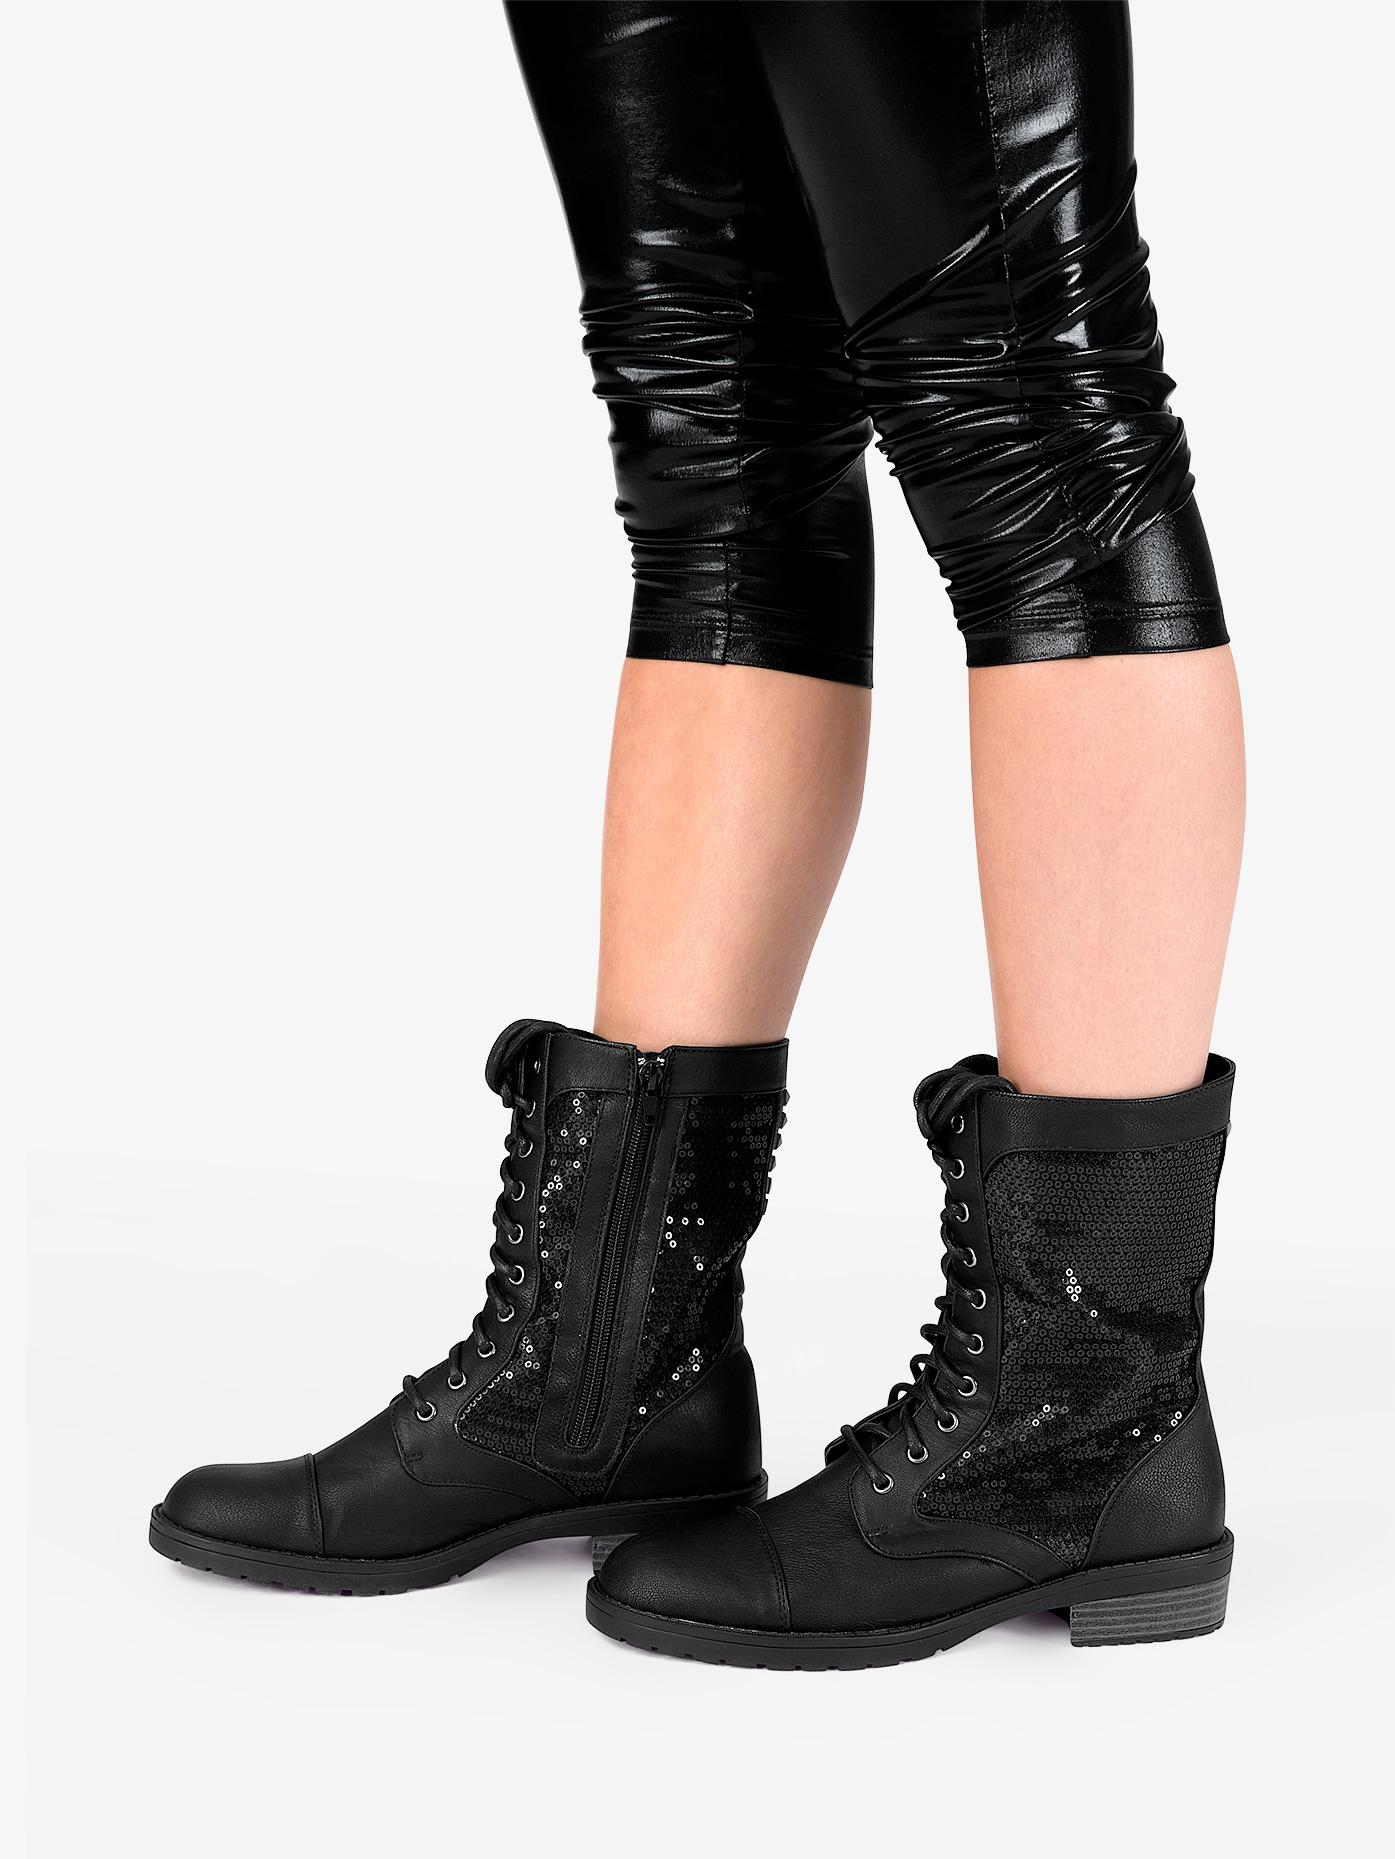 Combat Boot Shoes Double Platinum Swag Discountdance Com